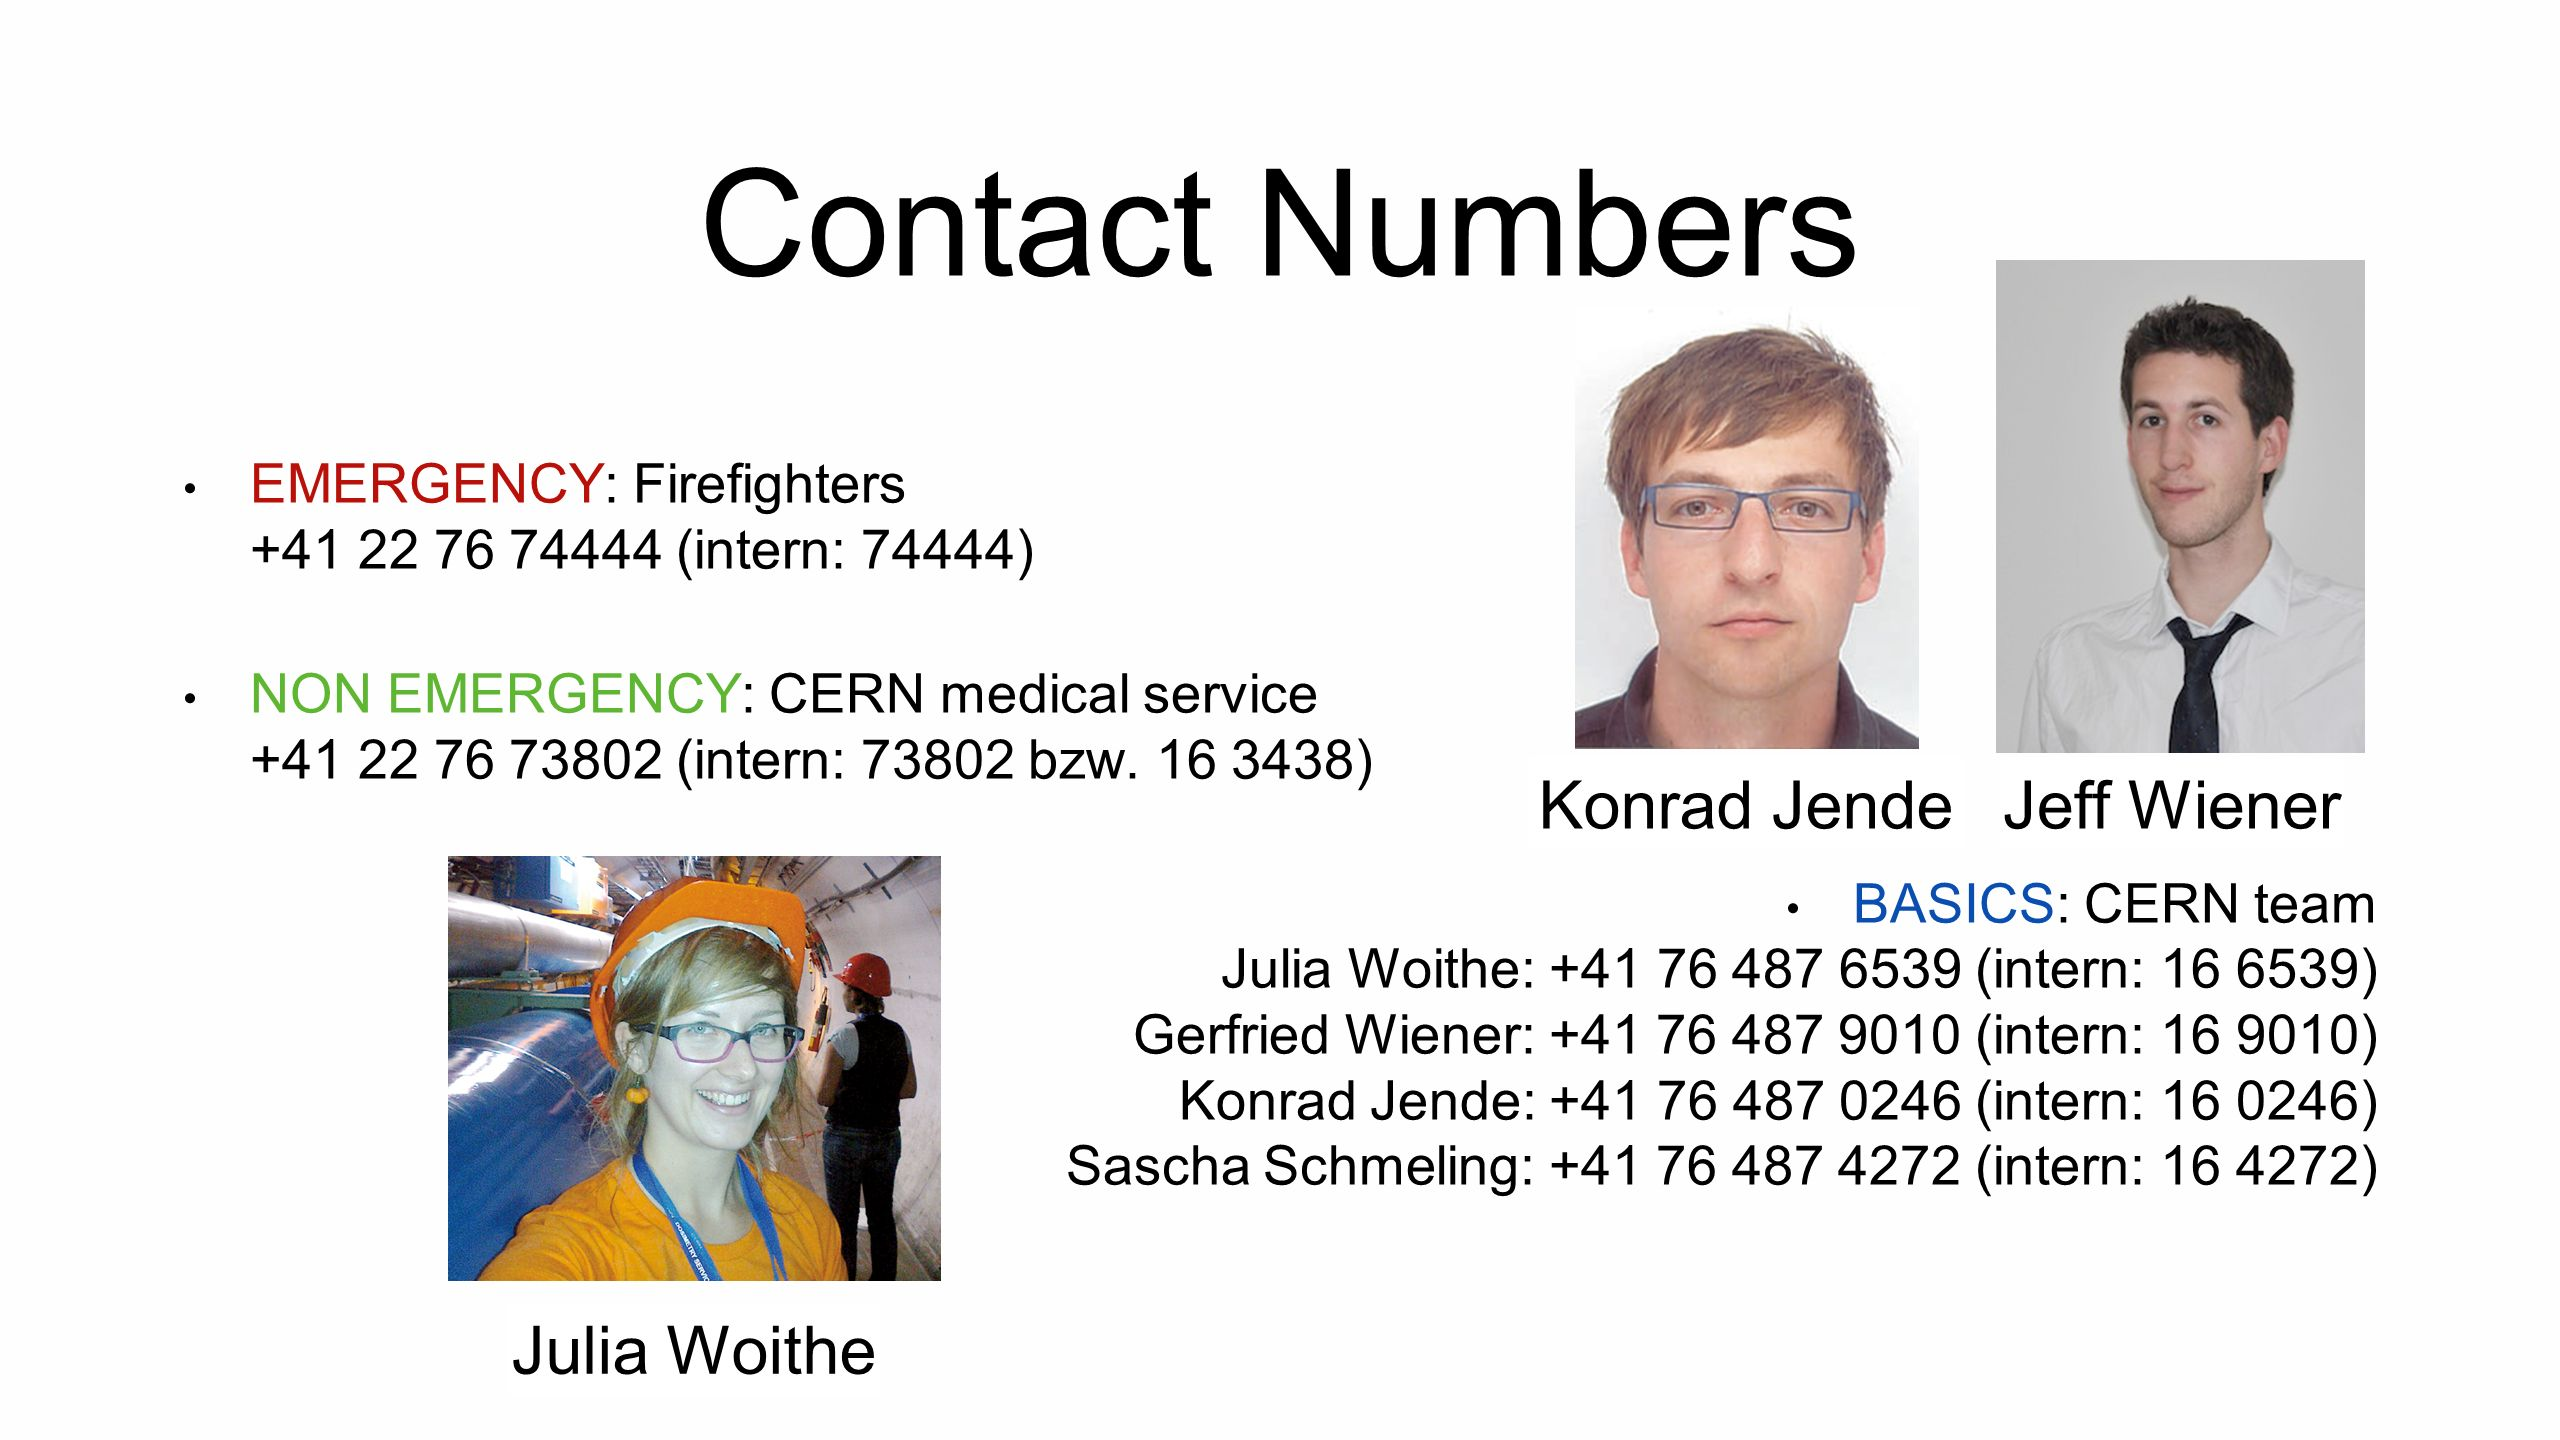 Contact Numbers EMERGENCY: Firefighters +41 22 76 74444 (intern: 74444) NON EMERGENCY: CERN medical service +41 22 76 73802 (intern: 73802 bzw. 16 343